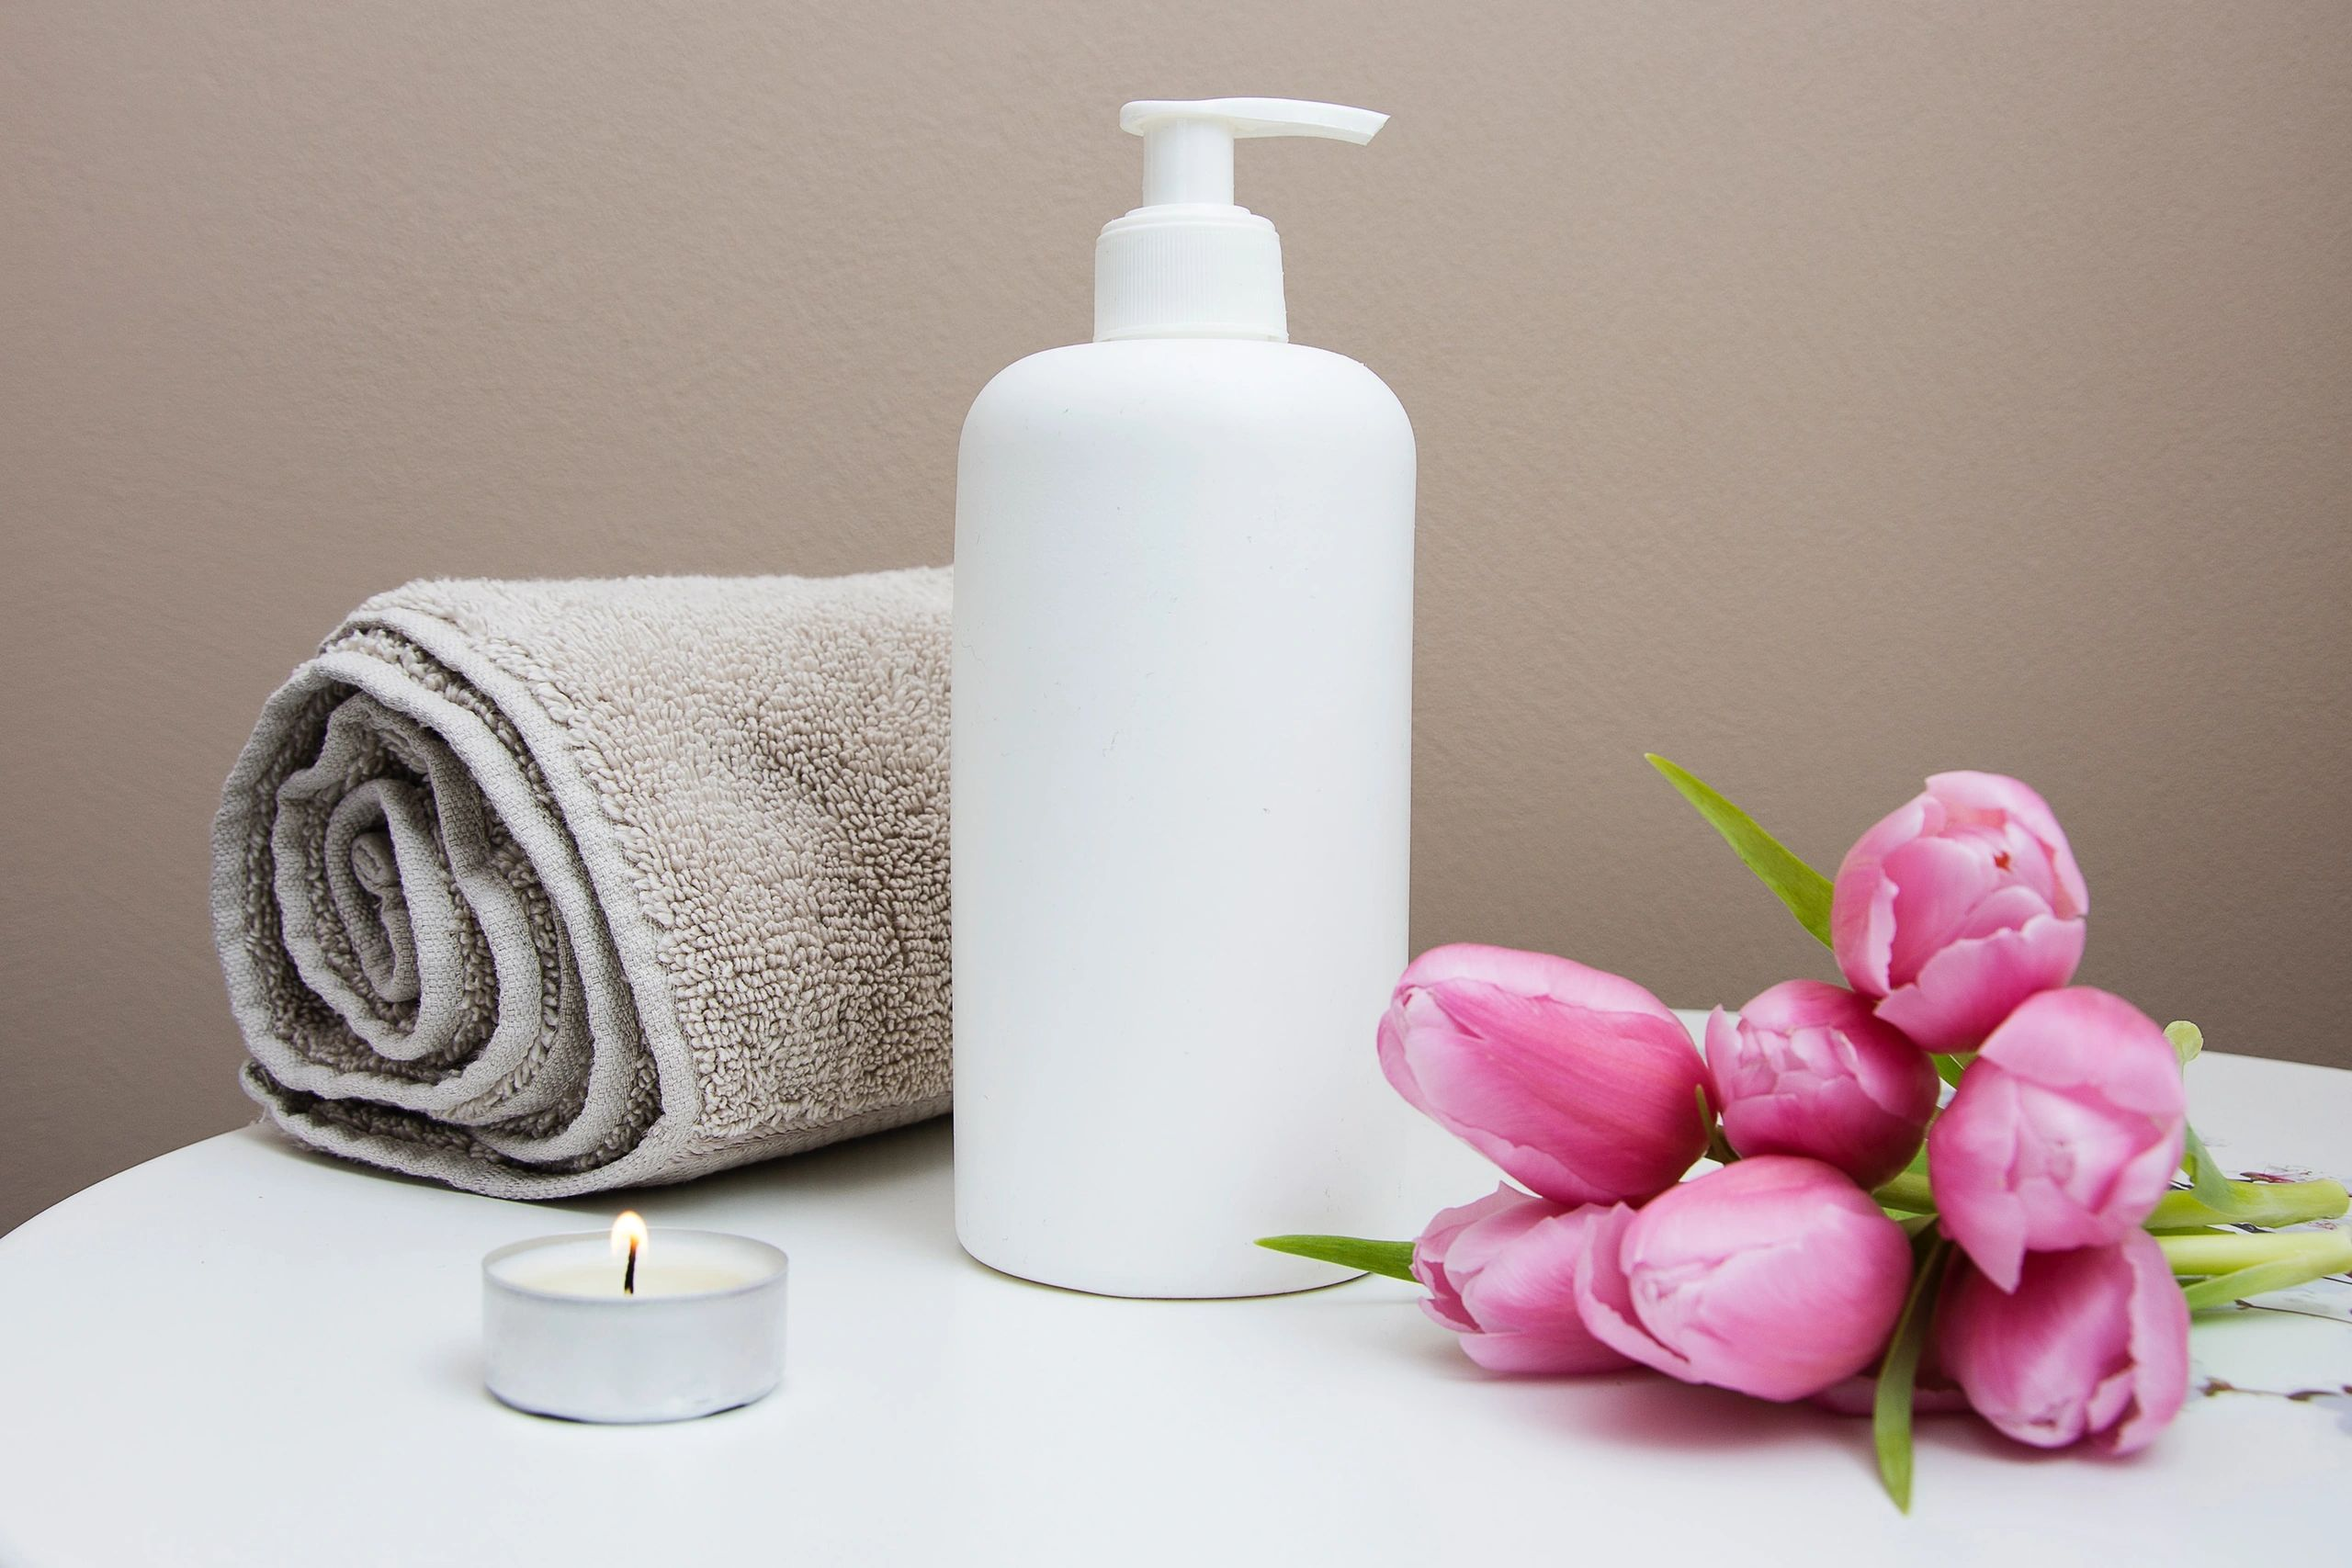 Donna Lynn Highlights and Skincare image of lotion and towel on table